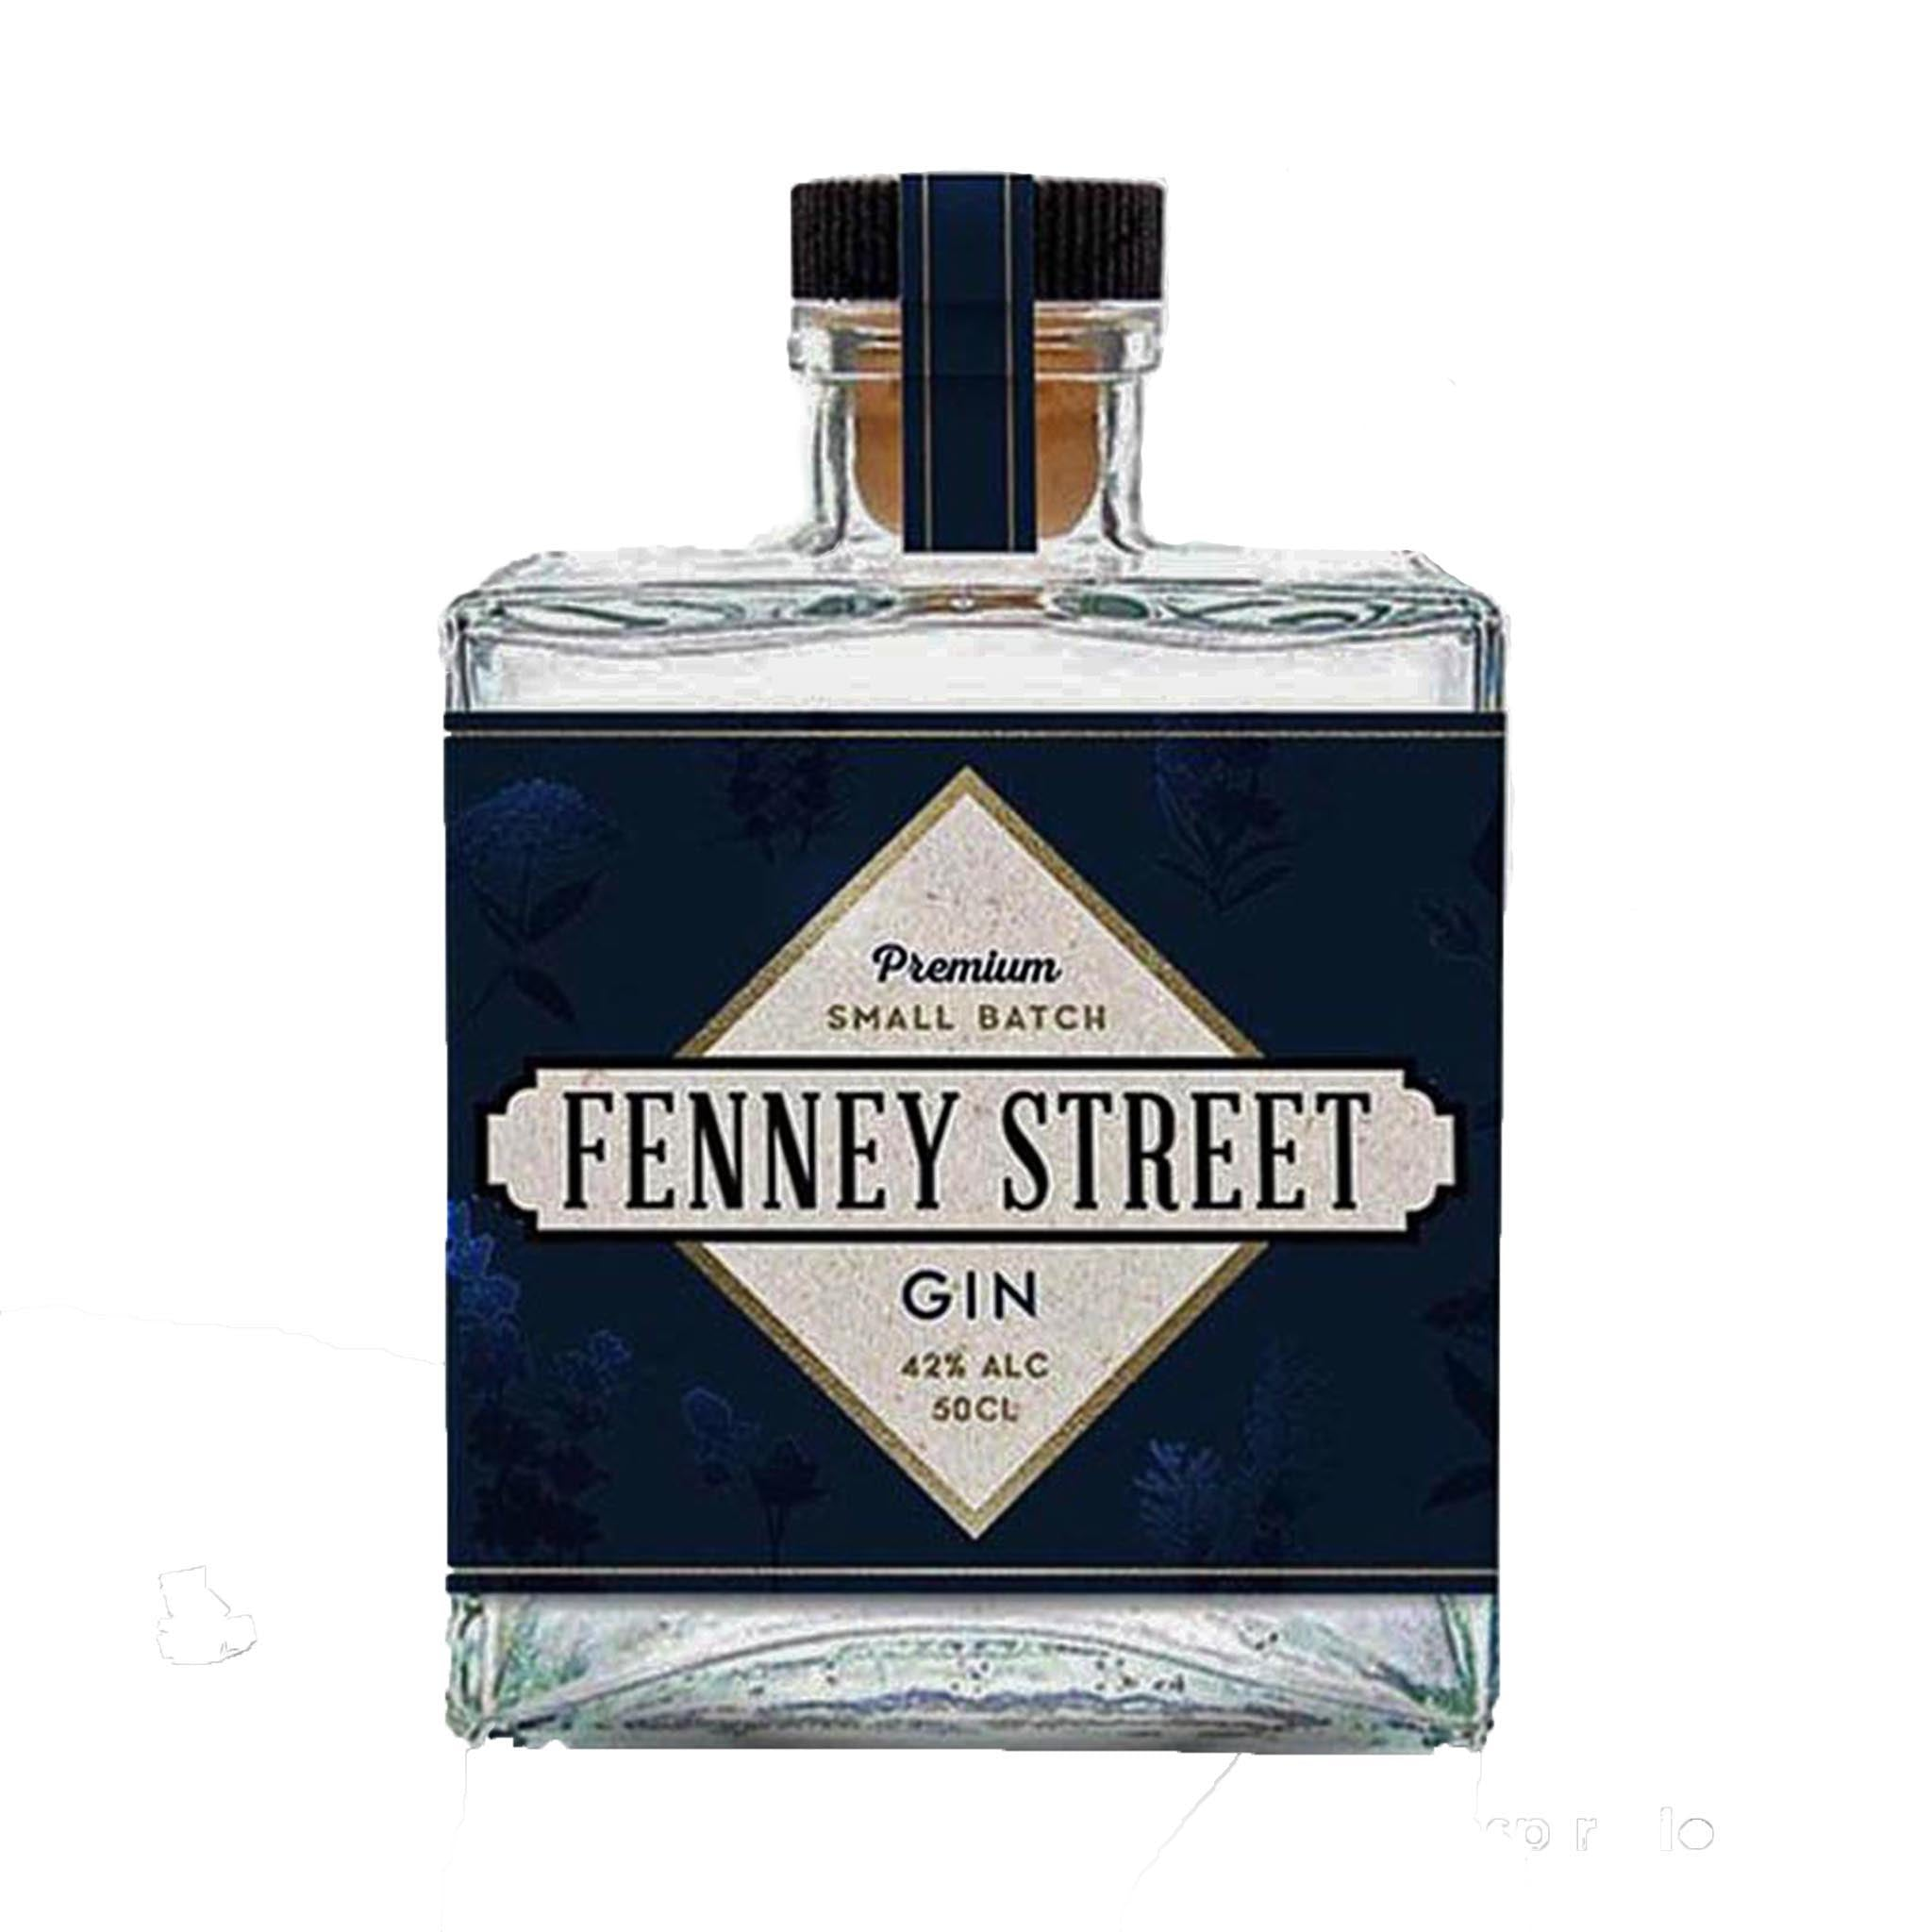 Fenney Street Gin, Alcoholic Beverages by Drinks Shop